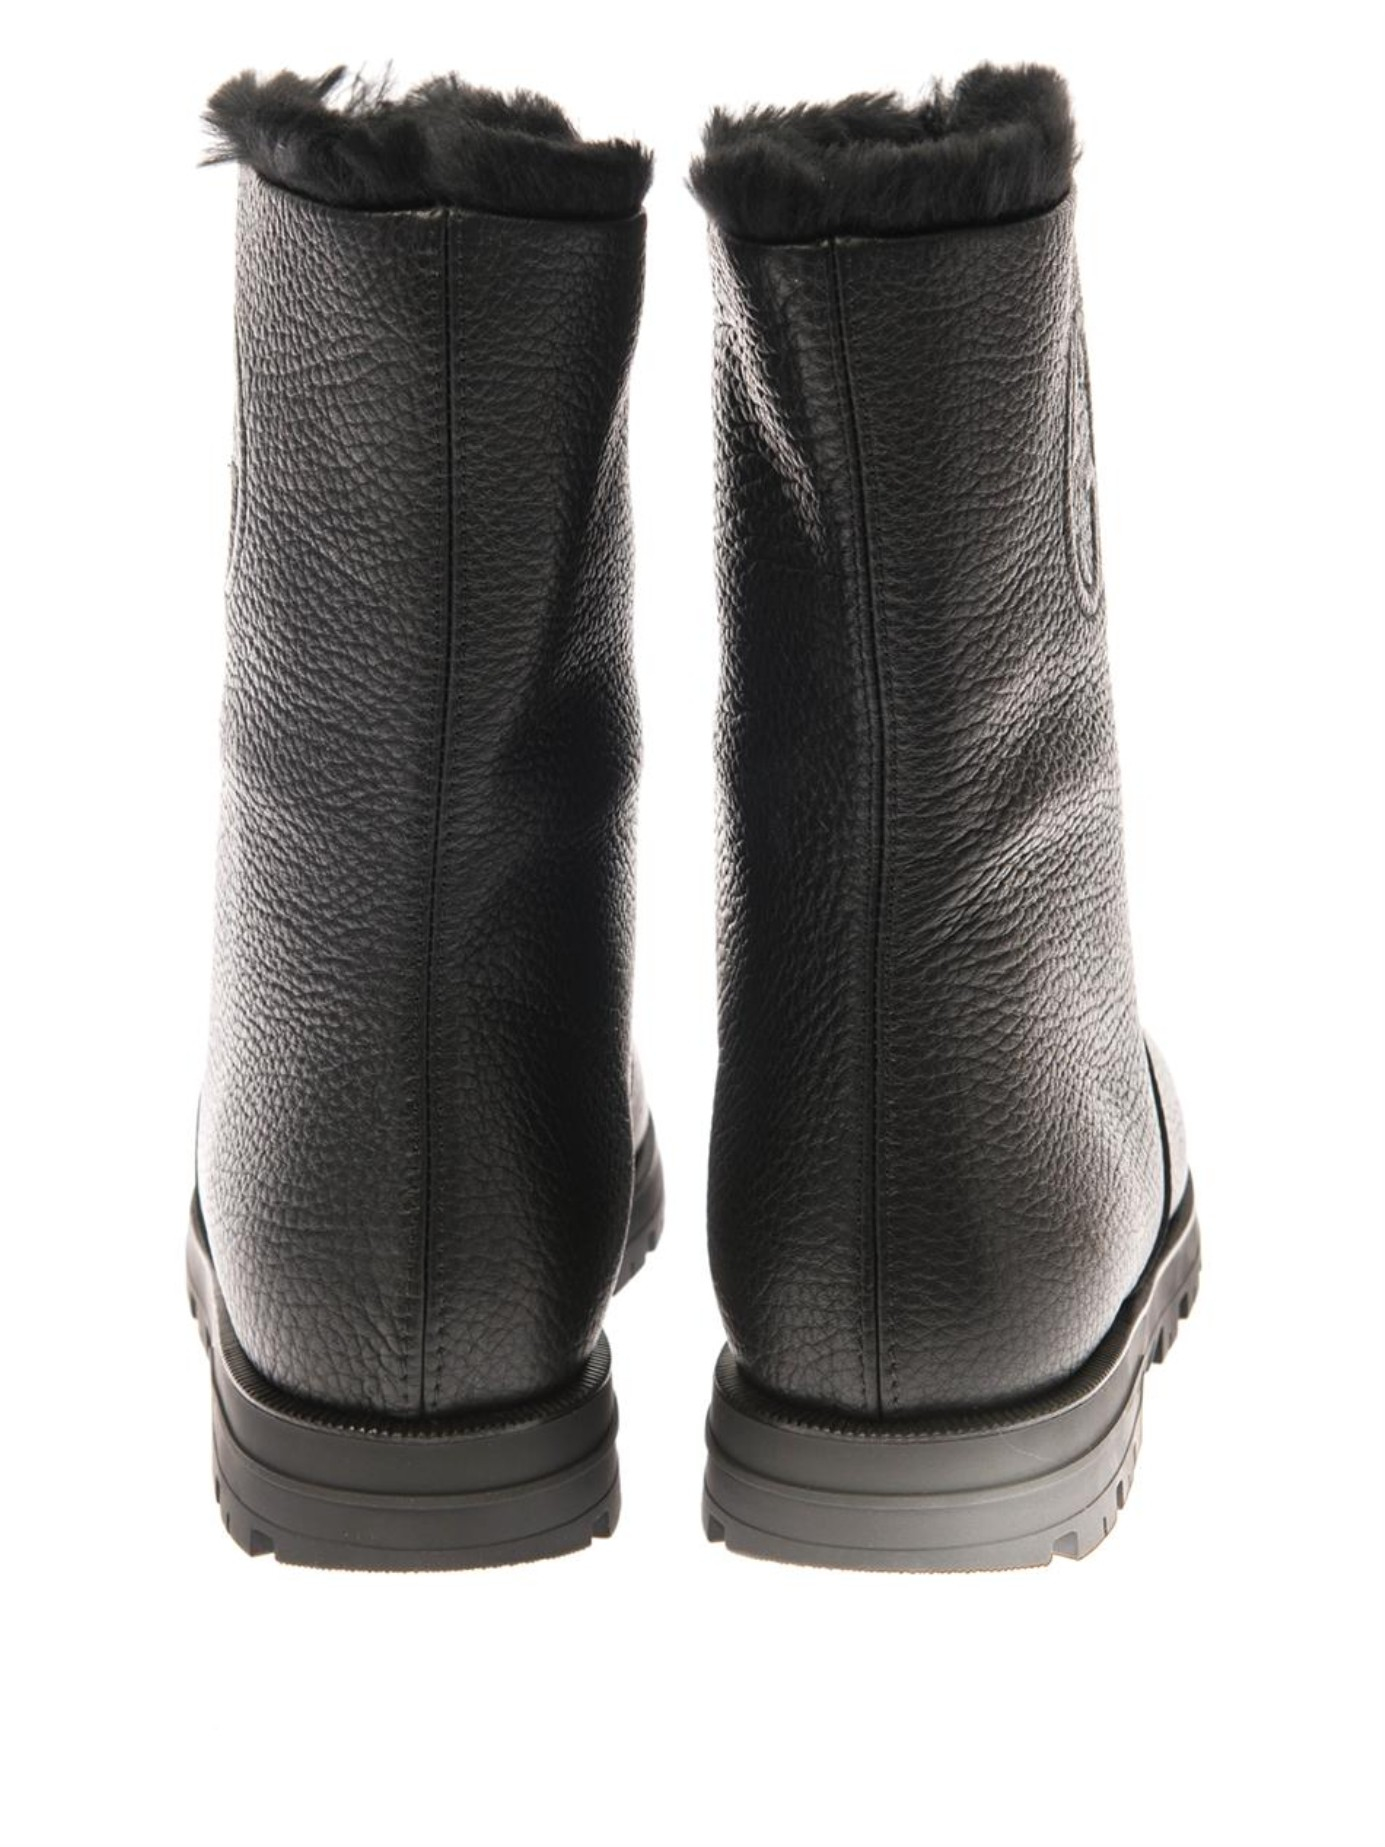 4a003185d Men's Gucci Boots With Fur | The Art of Mike Mignola